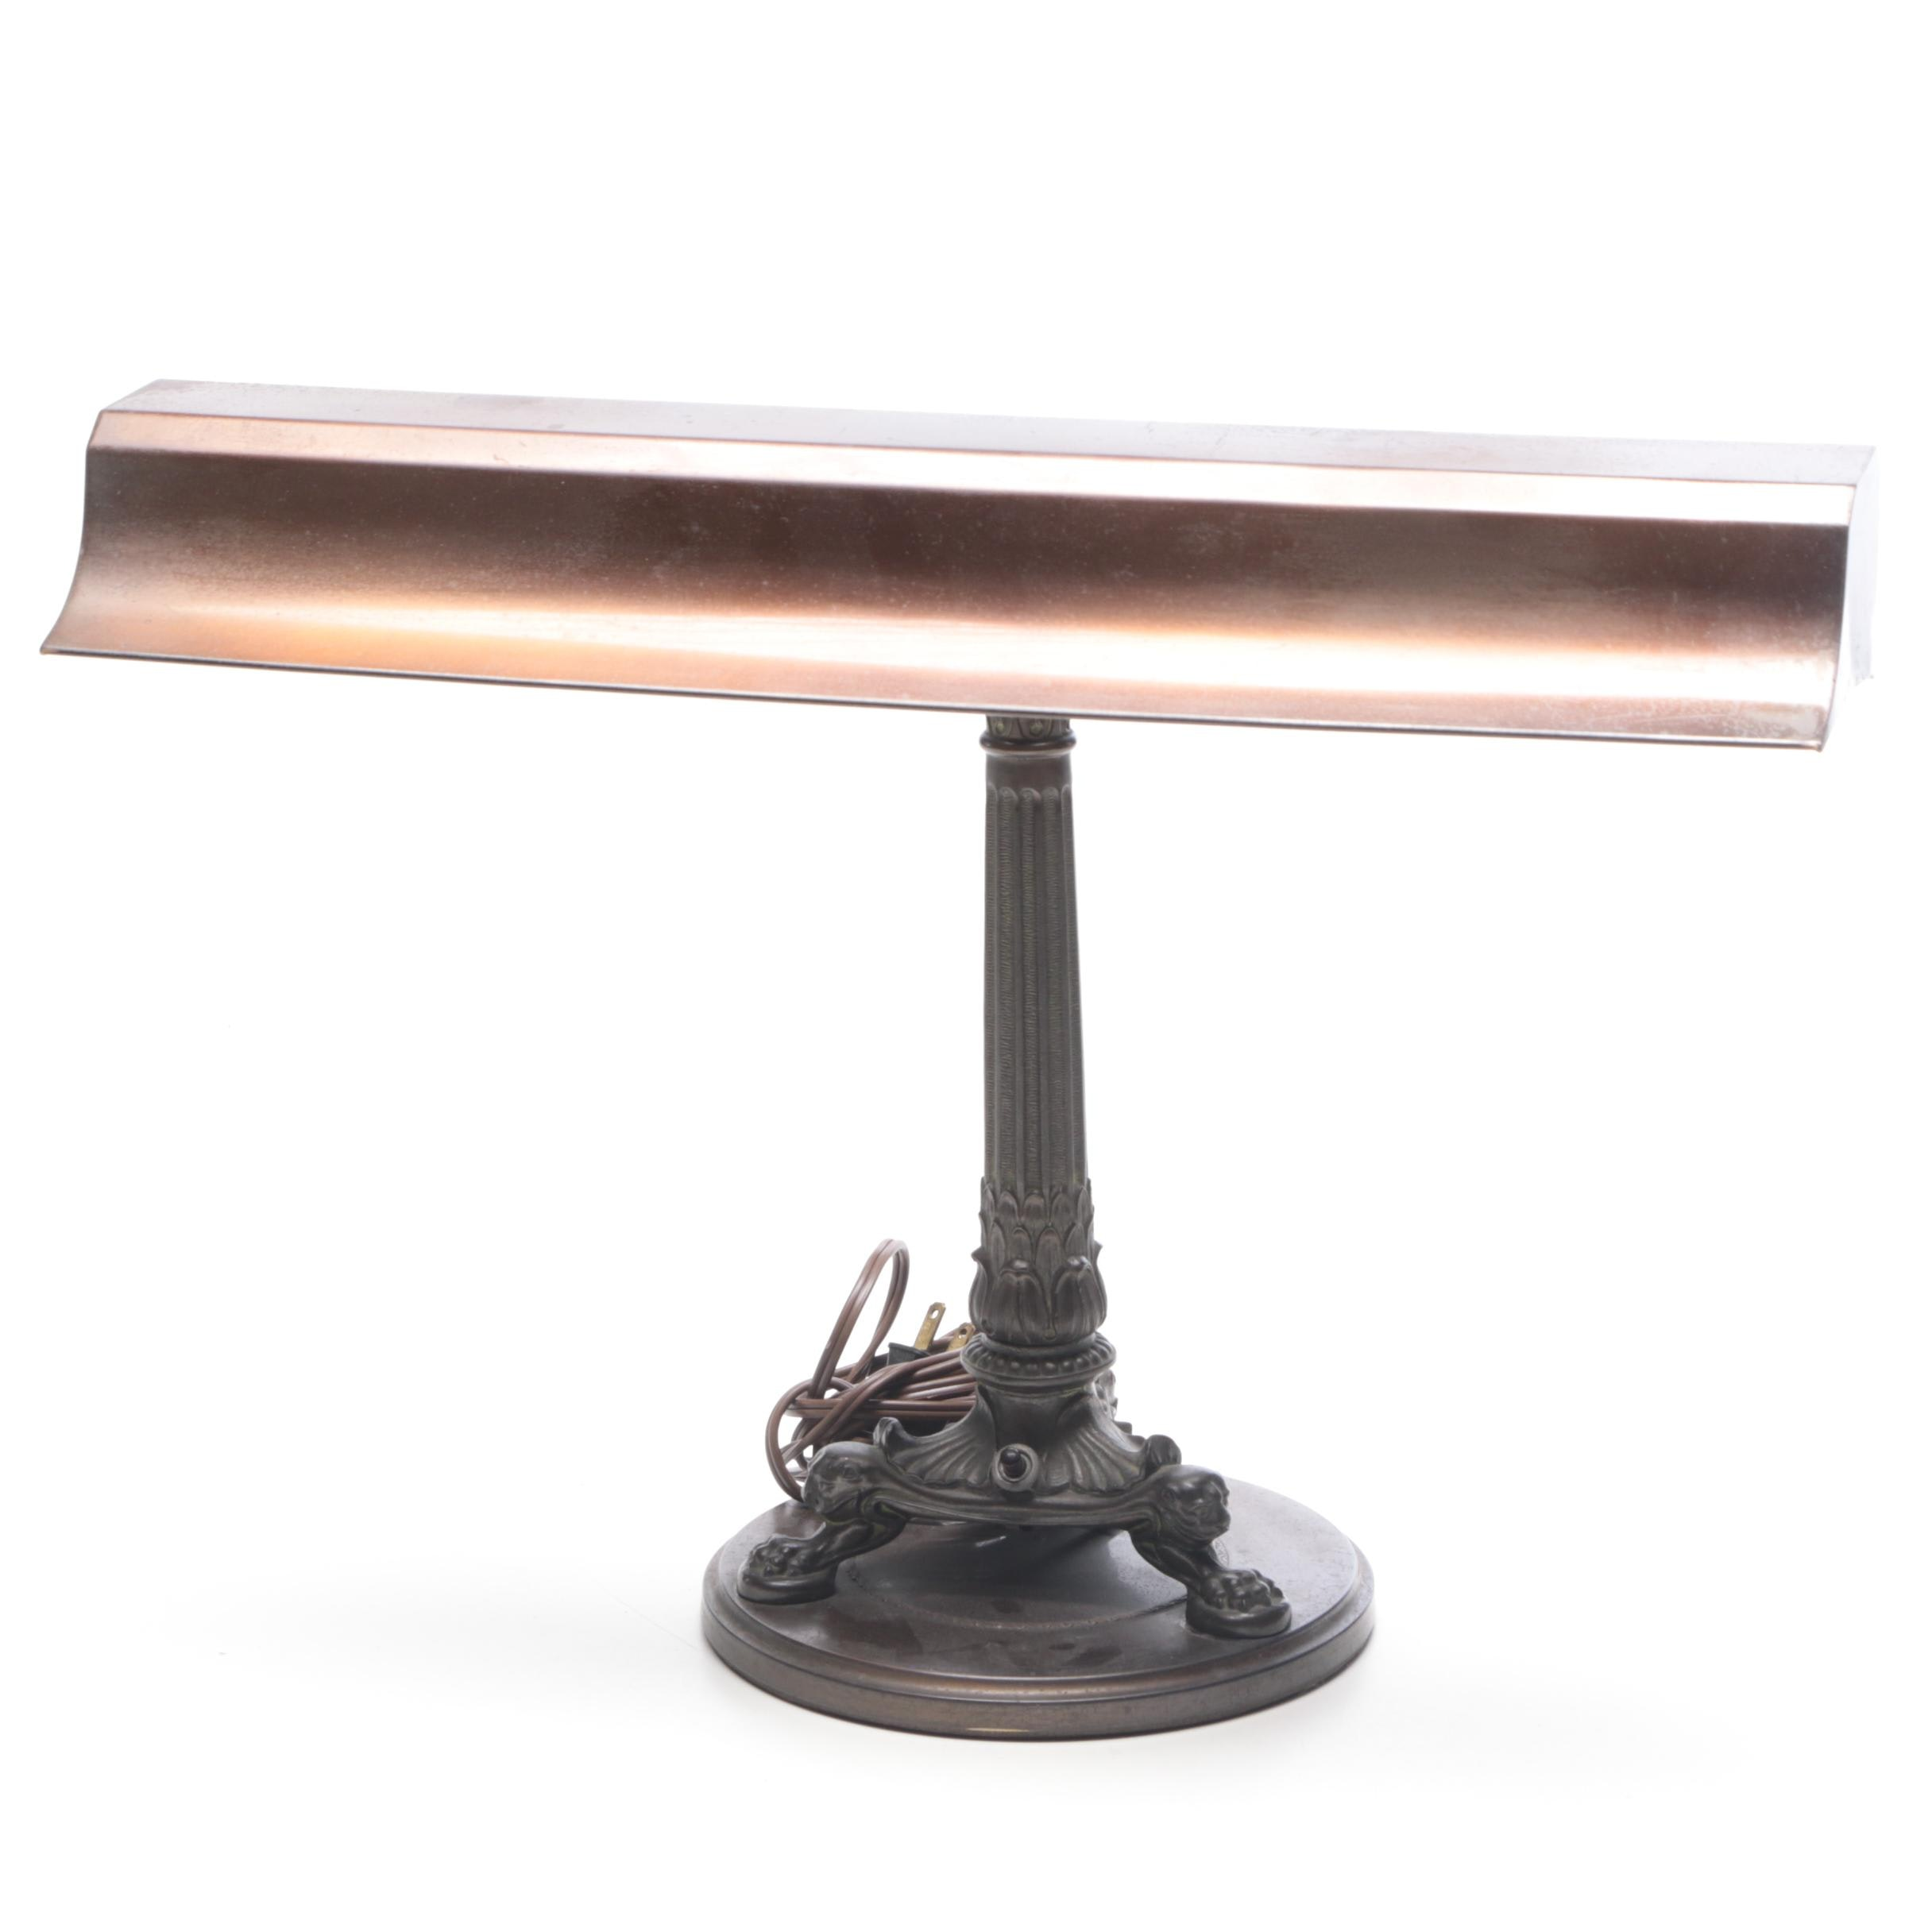 Bronze Finish Emeralite Columnar Desk Lamp, 1920s